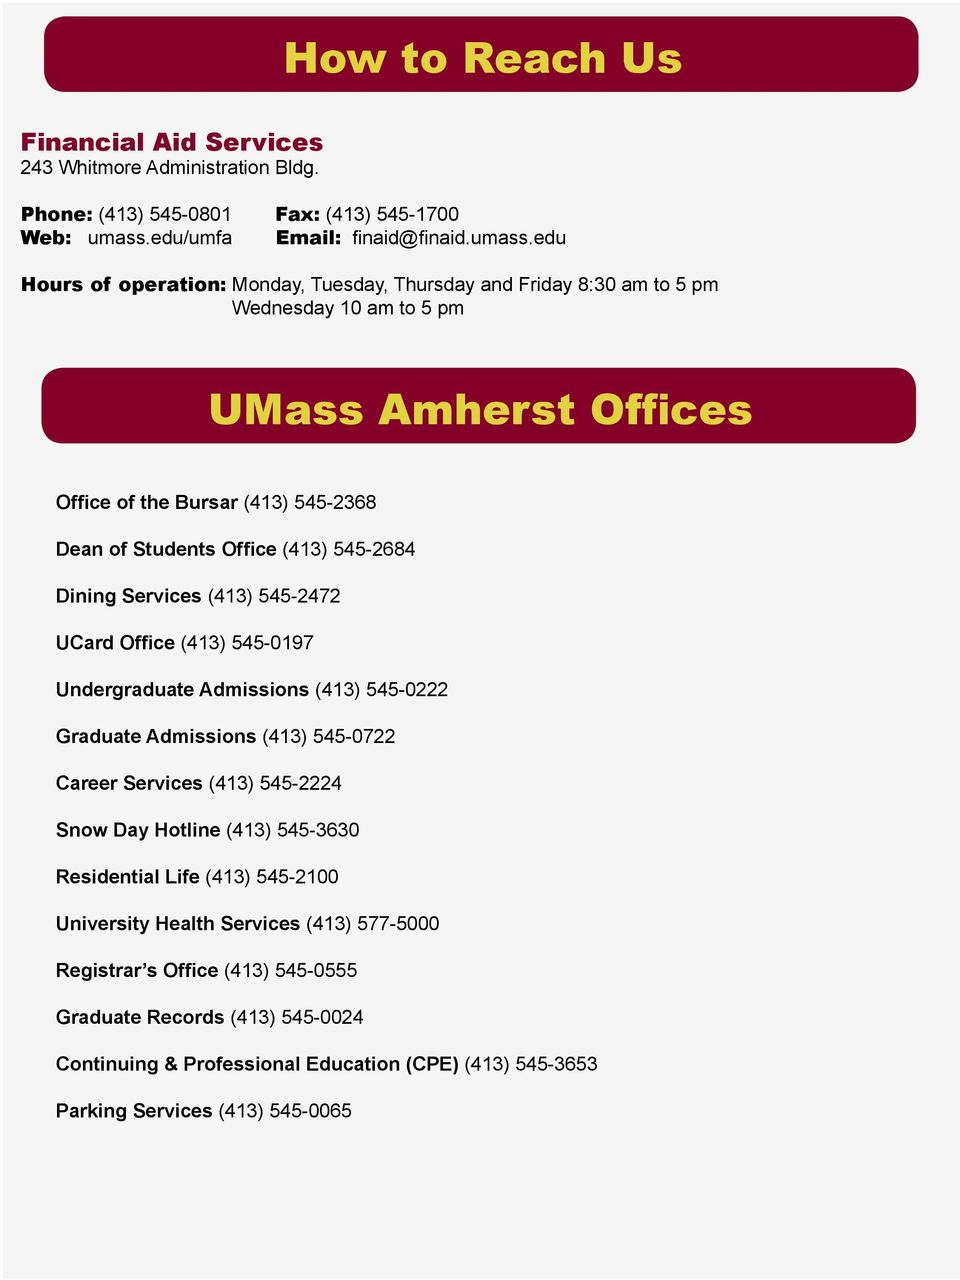 edu Hours of operation: Monday, Tuesday, Thursday and Friday 8:30 am to 5 pm Wednesday 10 am to 5 pm UMass Amherst Offices Office of the Bursar (413) 545-2368 Dean of Students Office (413)